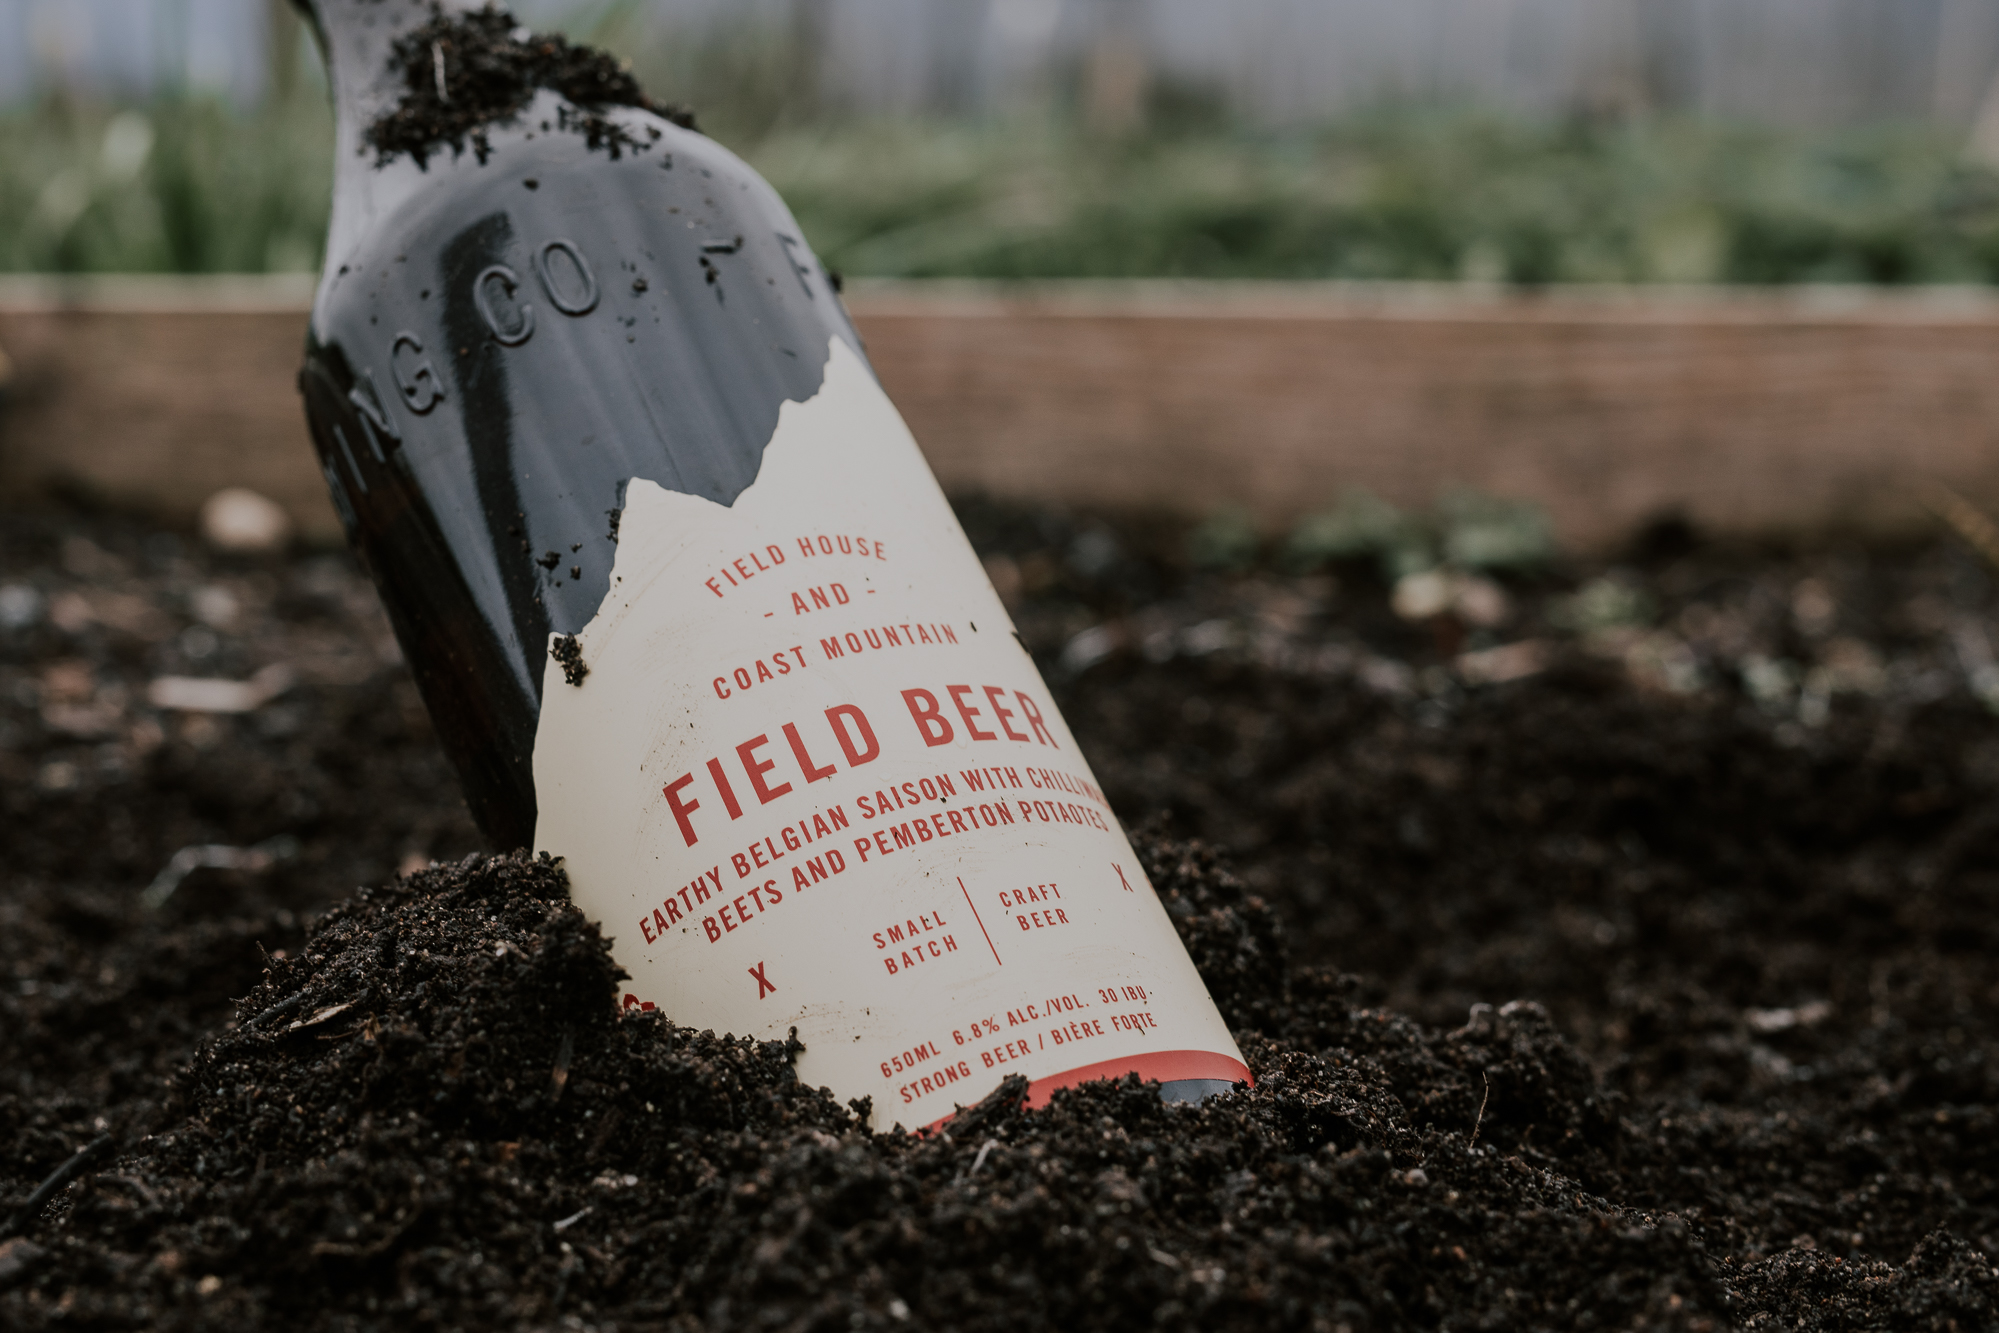 image courtesy Field House Brewing